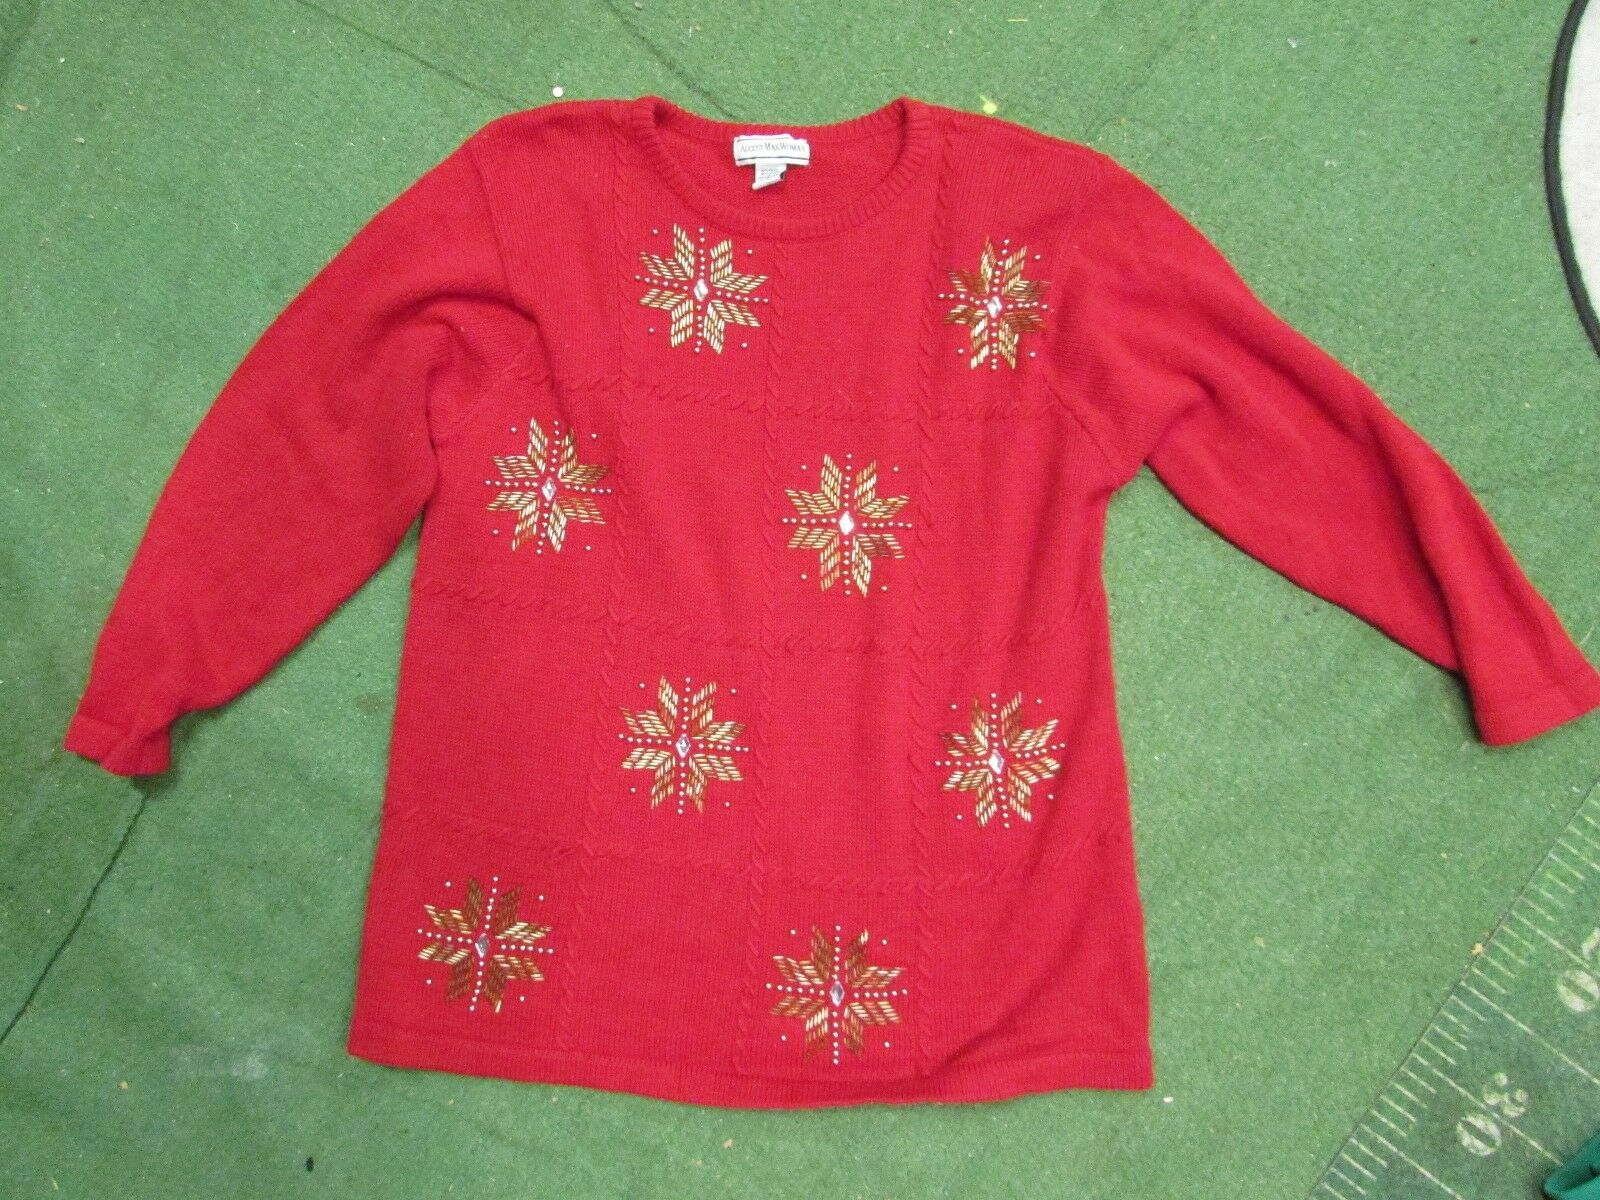 008eeb1c06a09 Vintage REALLY Ugly Christmas Sweater size 1X august max woman gold  snowflakes